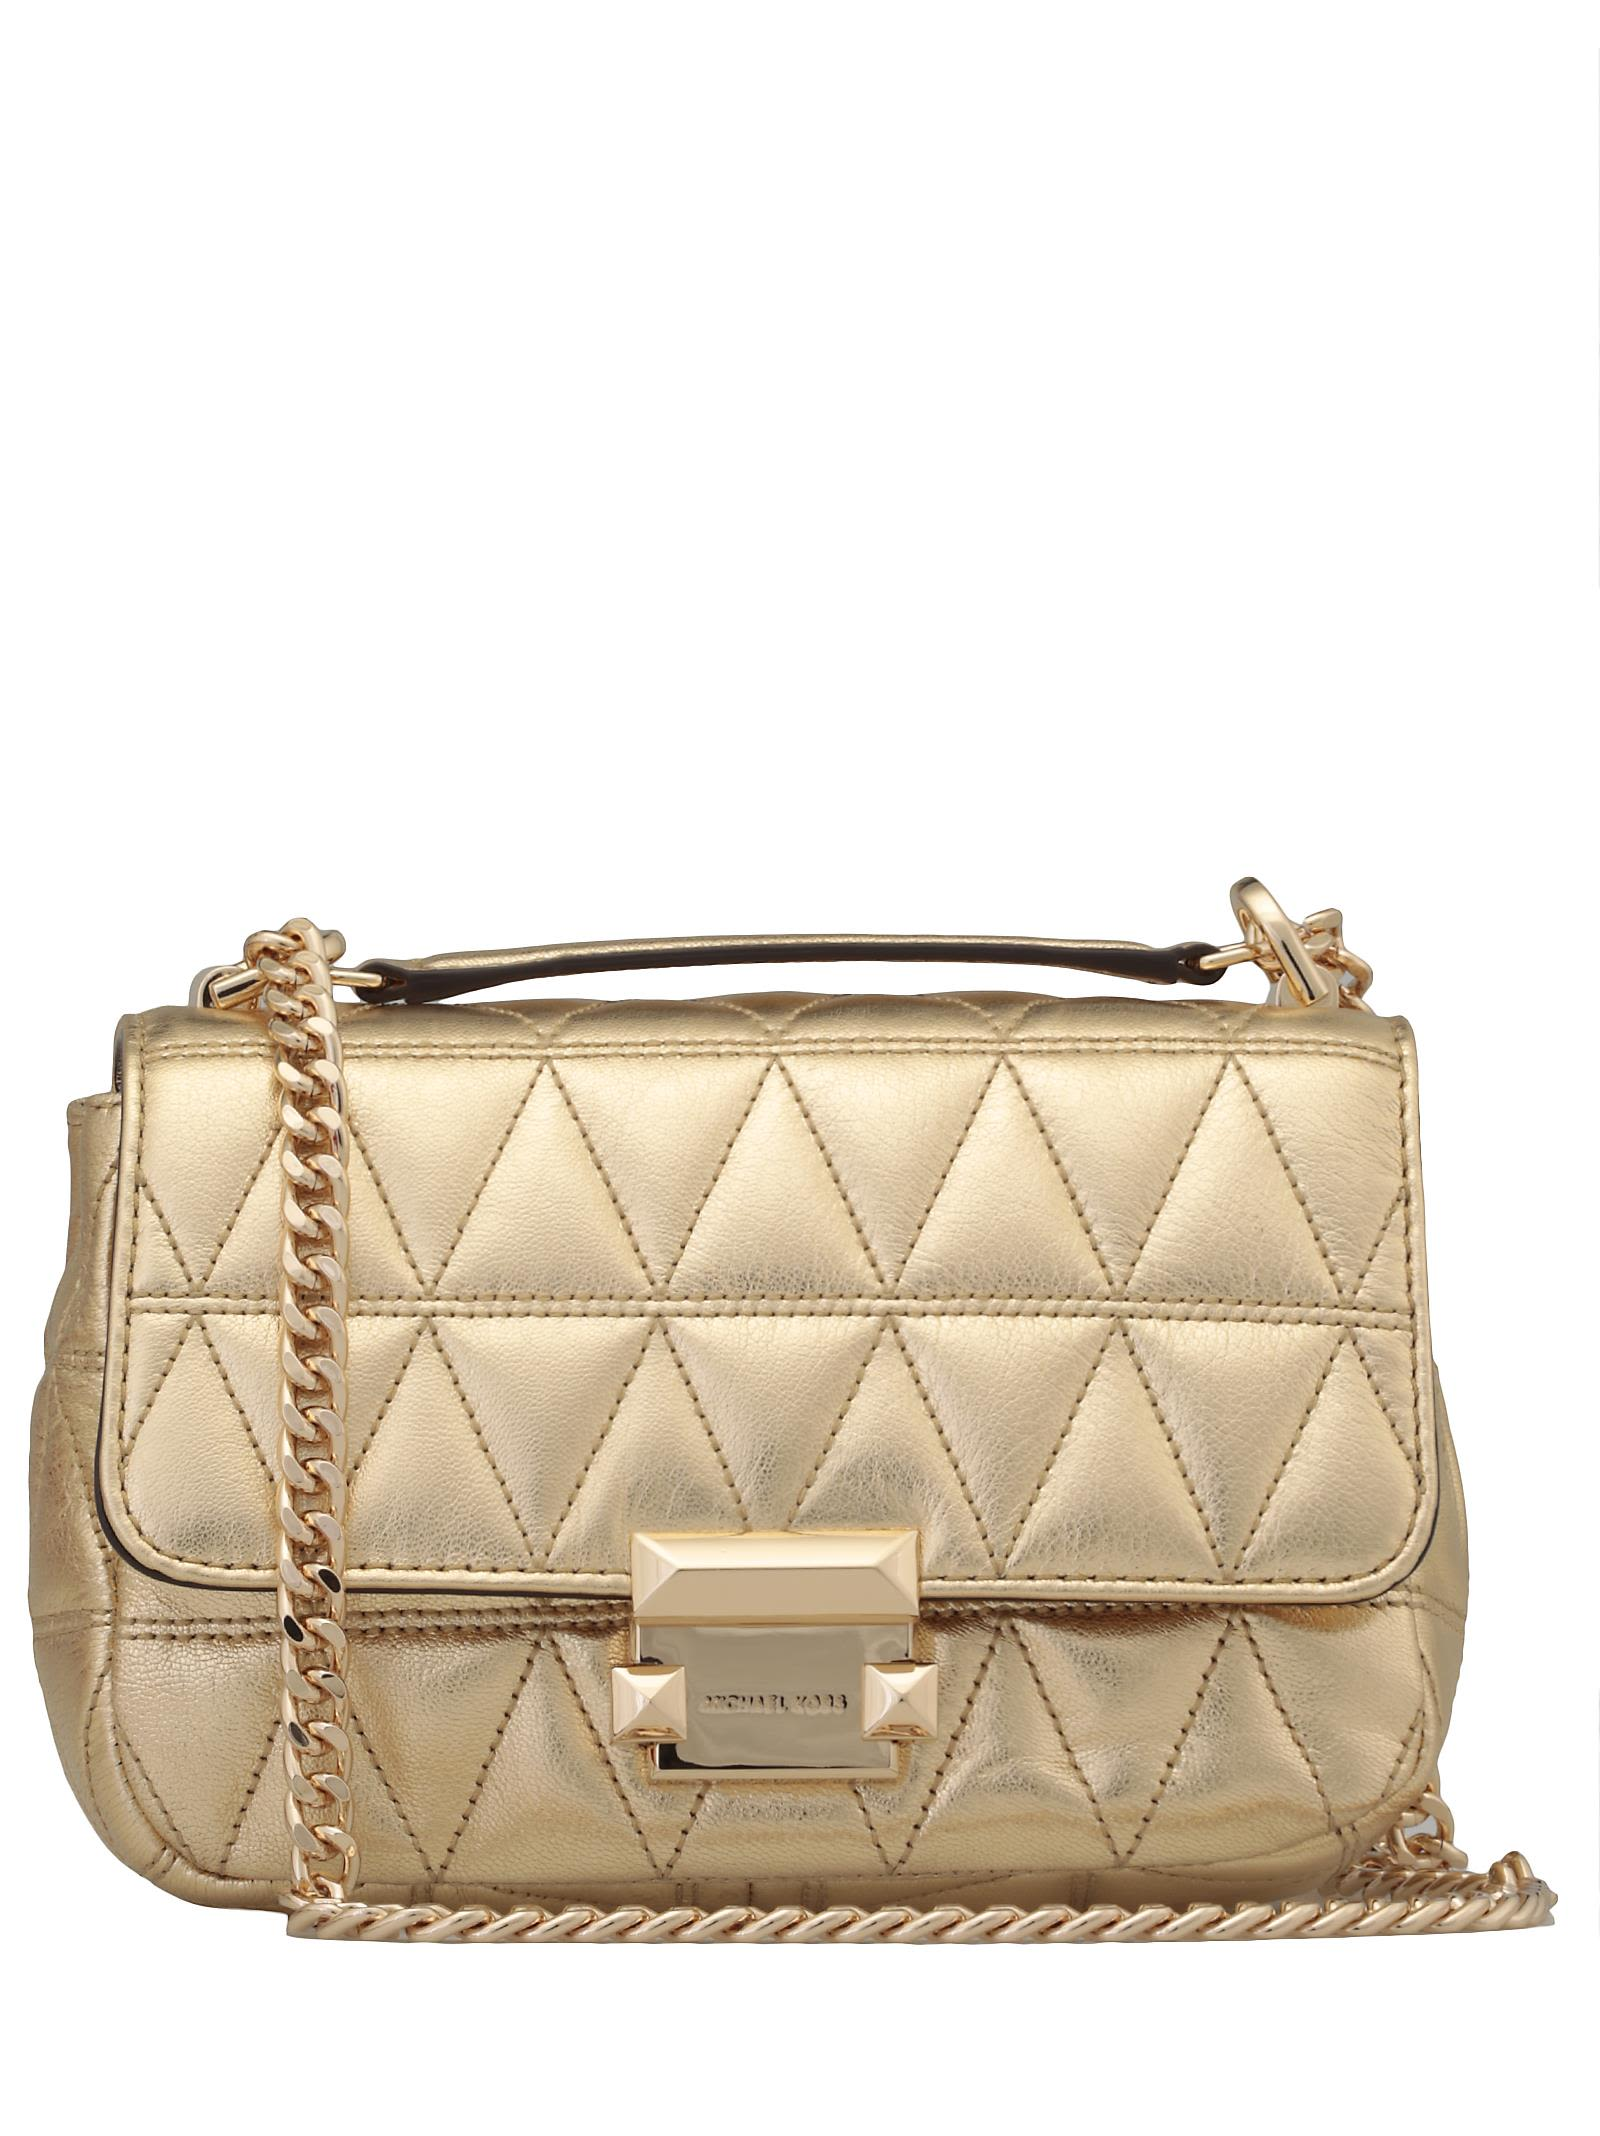 MICHAEL Michael Kors Sloan Chain Bag